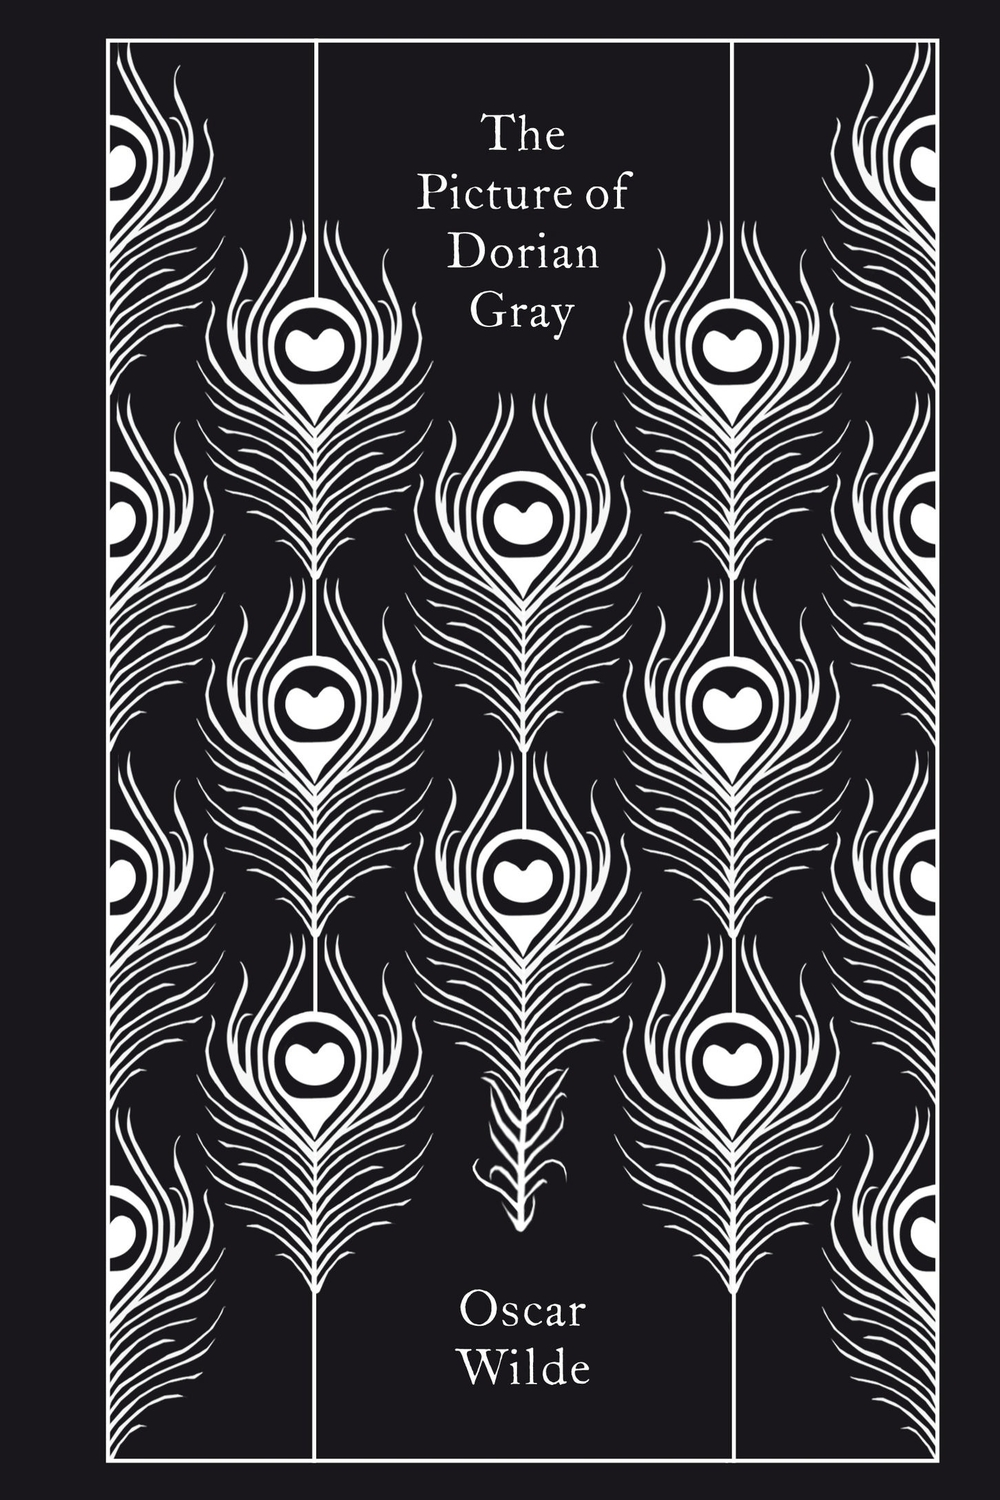 The Picture of Dorian Gray by Oscar Wilde   A fantasy/horror fiction by Oscar Wilde. Dorian Gray is a fashionable young man who sells his soul for eternal youth and beauty. His life is one of envy, vanity, riches, lust and excess. I really enjoyed this story, despite the main character's selfish disposition, and found the storytelling gripping and clever.  Recommend?  Yes